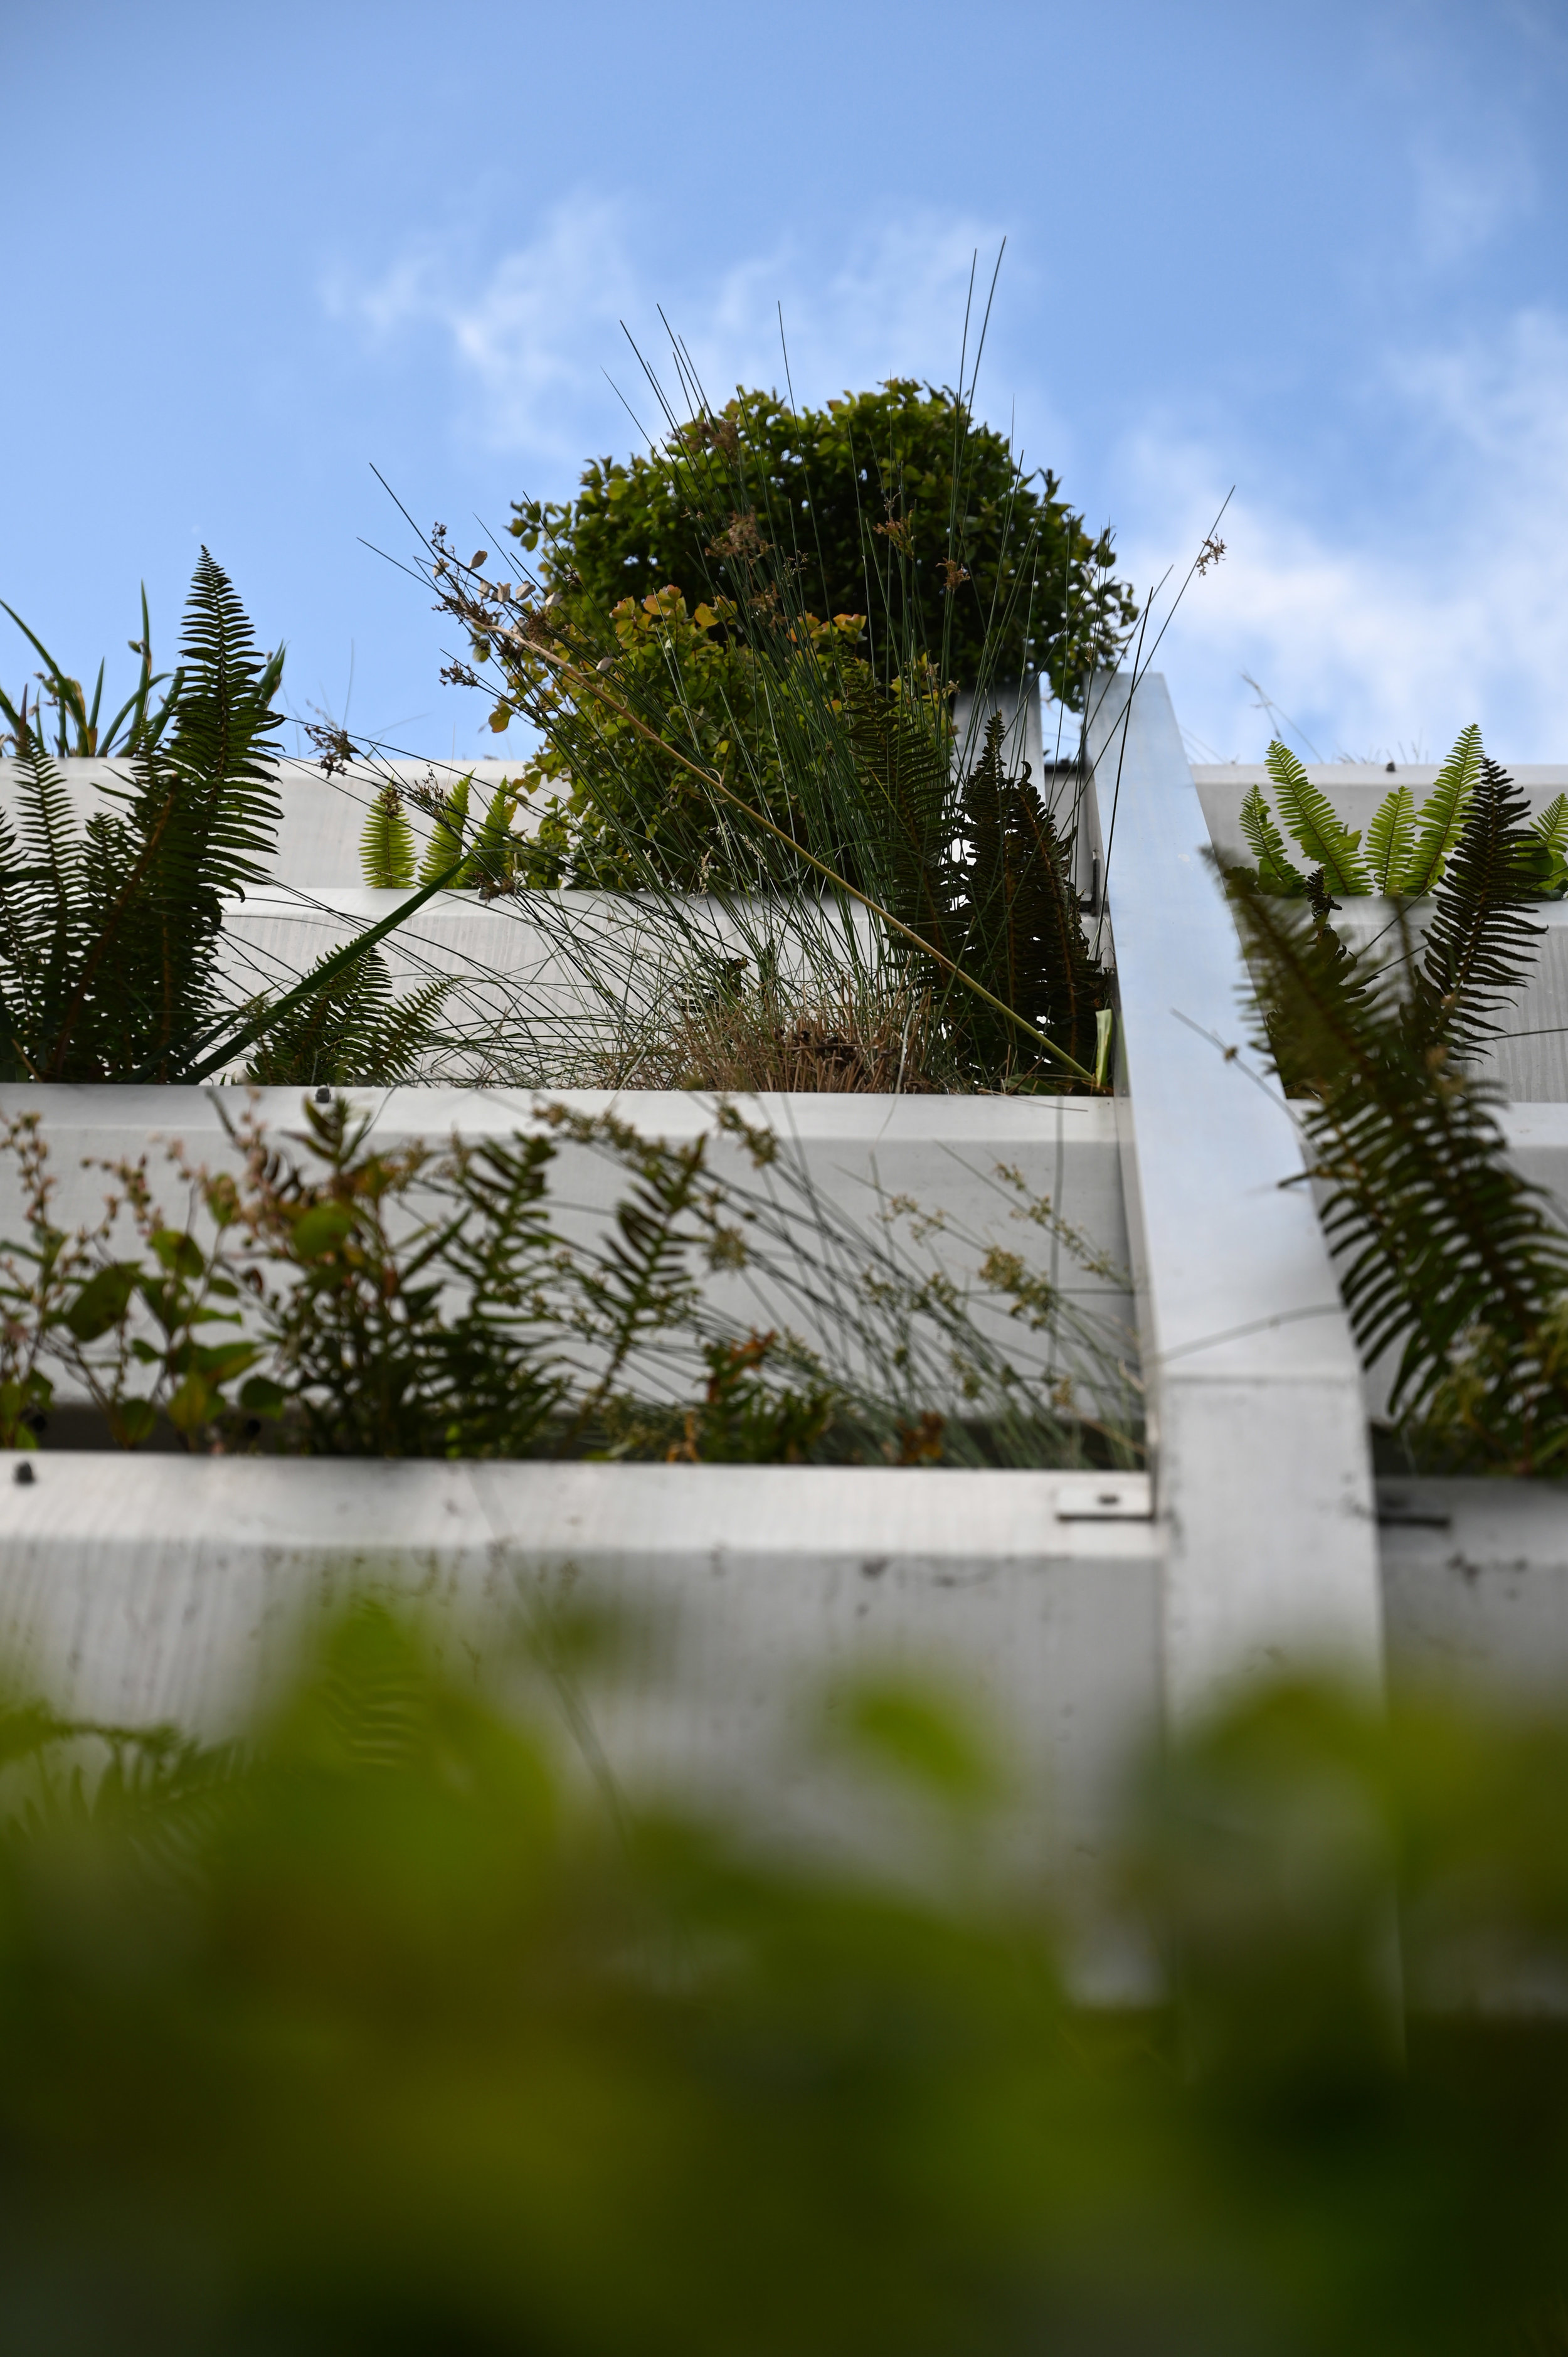 stormwater wall from ground against clear sky